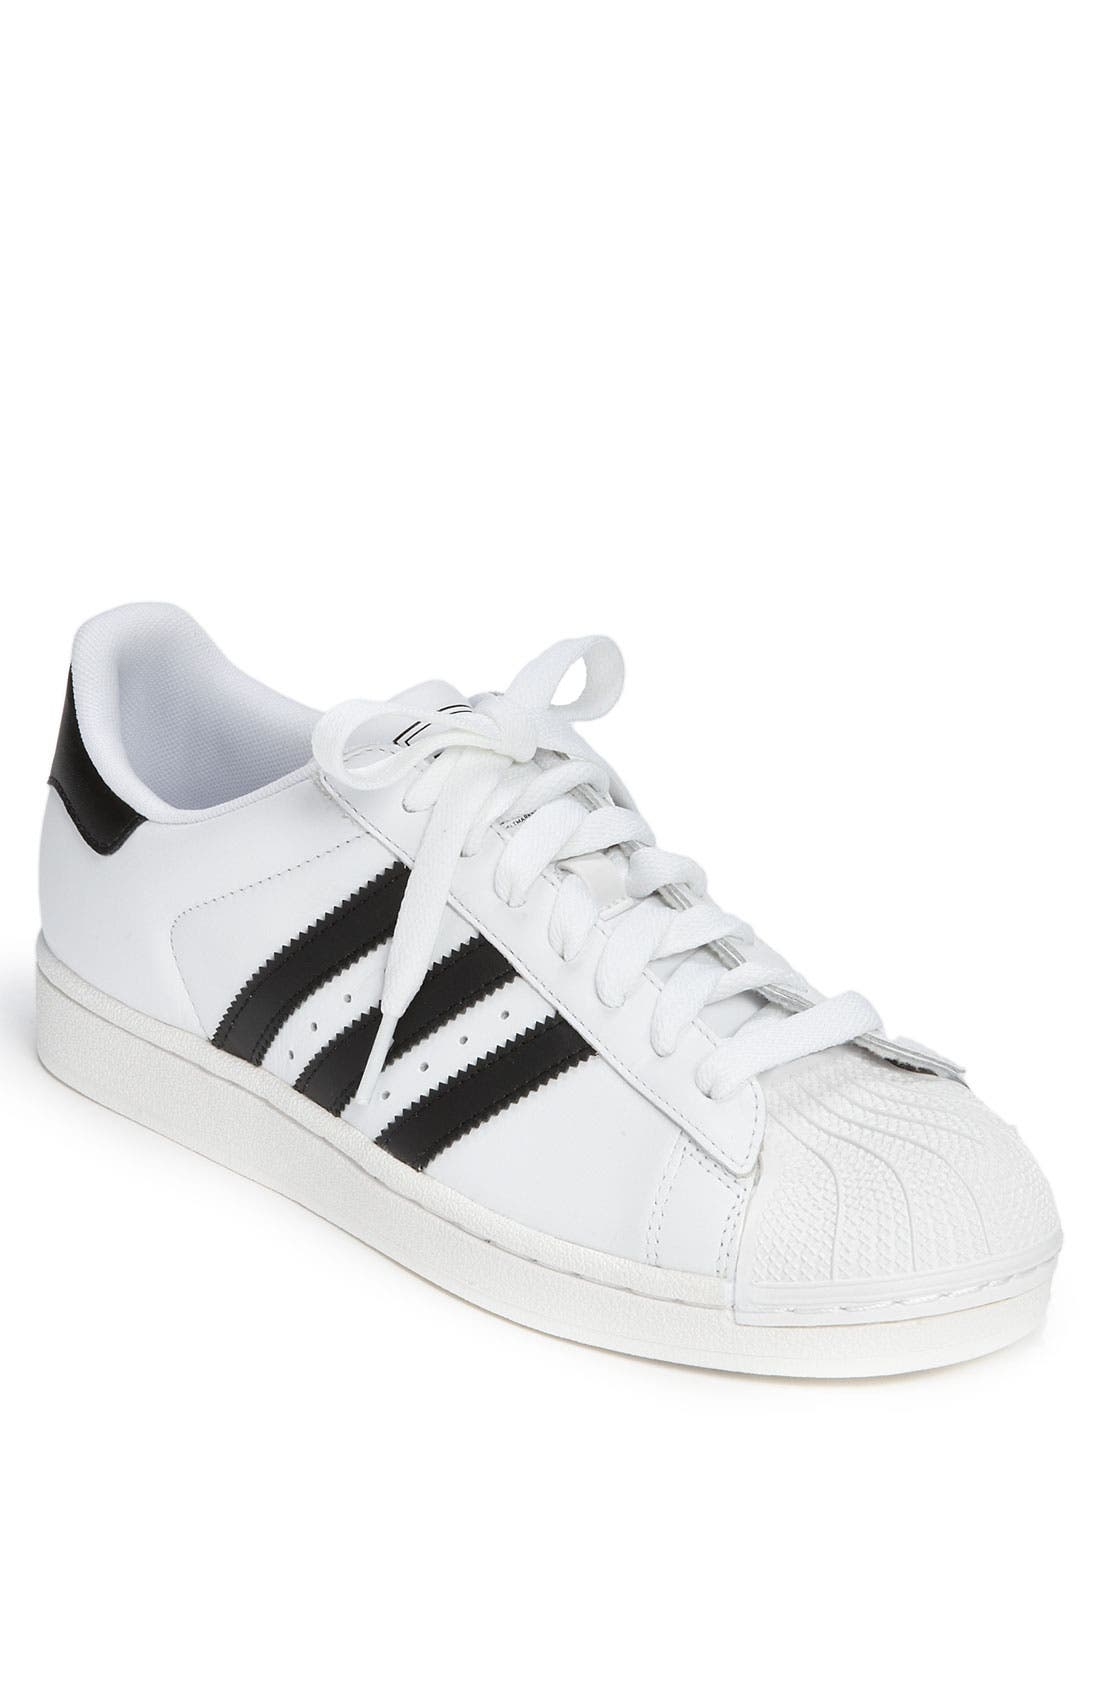 Alternate Image 1 Selected - adidas 'Superstar II' Sneaker (Men) (Online Only)